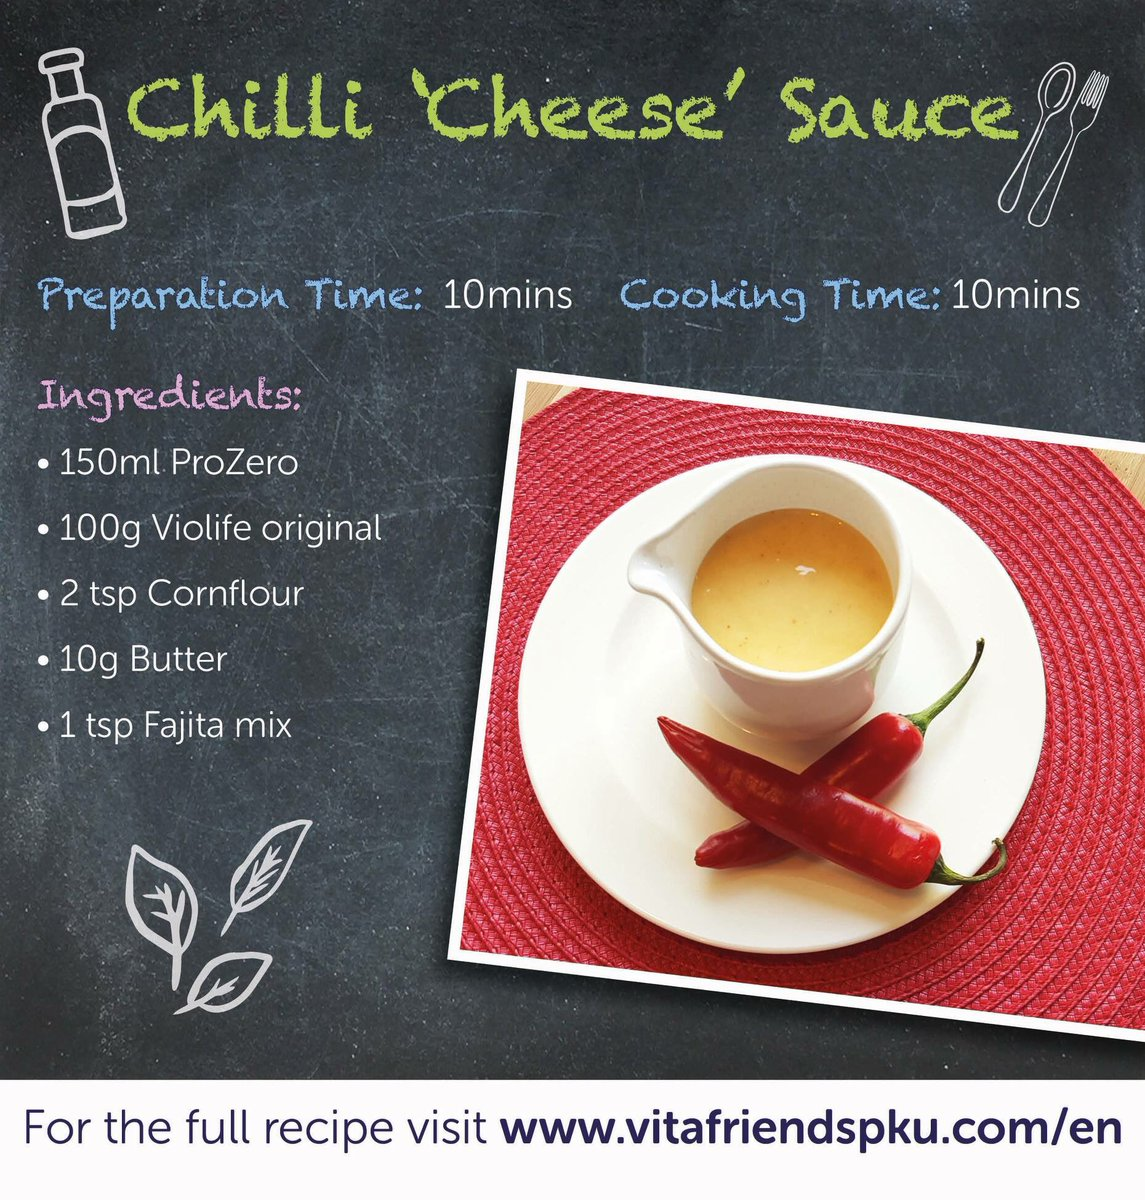 Fancy something a bit different to dunk your Sweet Potato Fries in? Try our Chilli &#39;Cheese&#39; Sauce to spice things up a bit! Recipe is here:  https://www. vitafriendspku.com/en/recipes/low -protein-sauce/ &nbsp; …  #pku #pkurecipes #FakeawayMay<br>http://pic.twitter.com/vG1iHCqj75